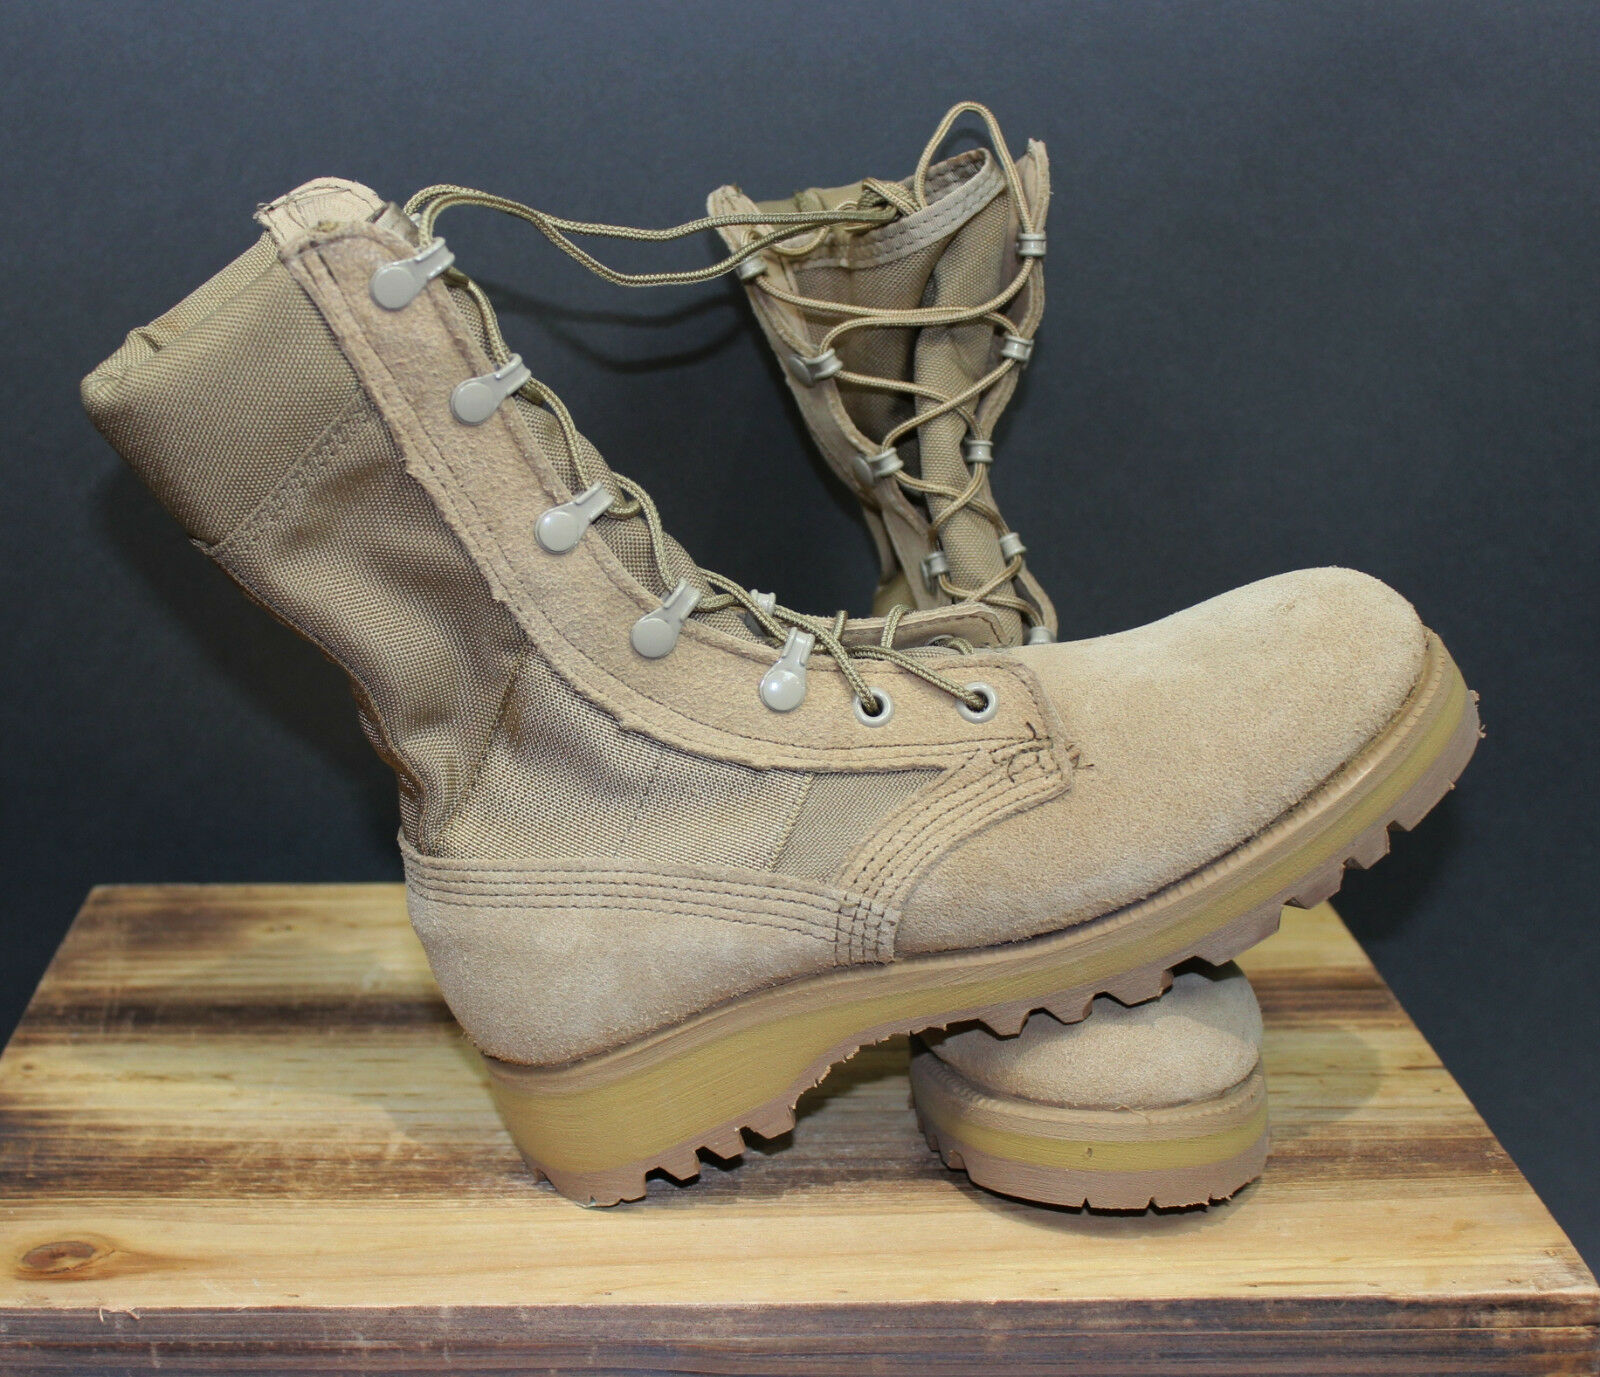 NWOT GI Genuine Issue Army Military Tan Hot Weather Military Boots